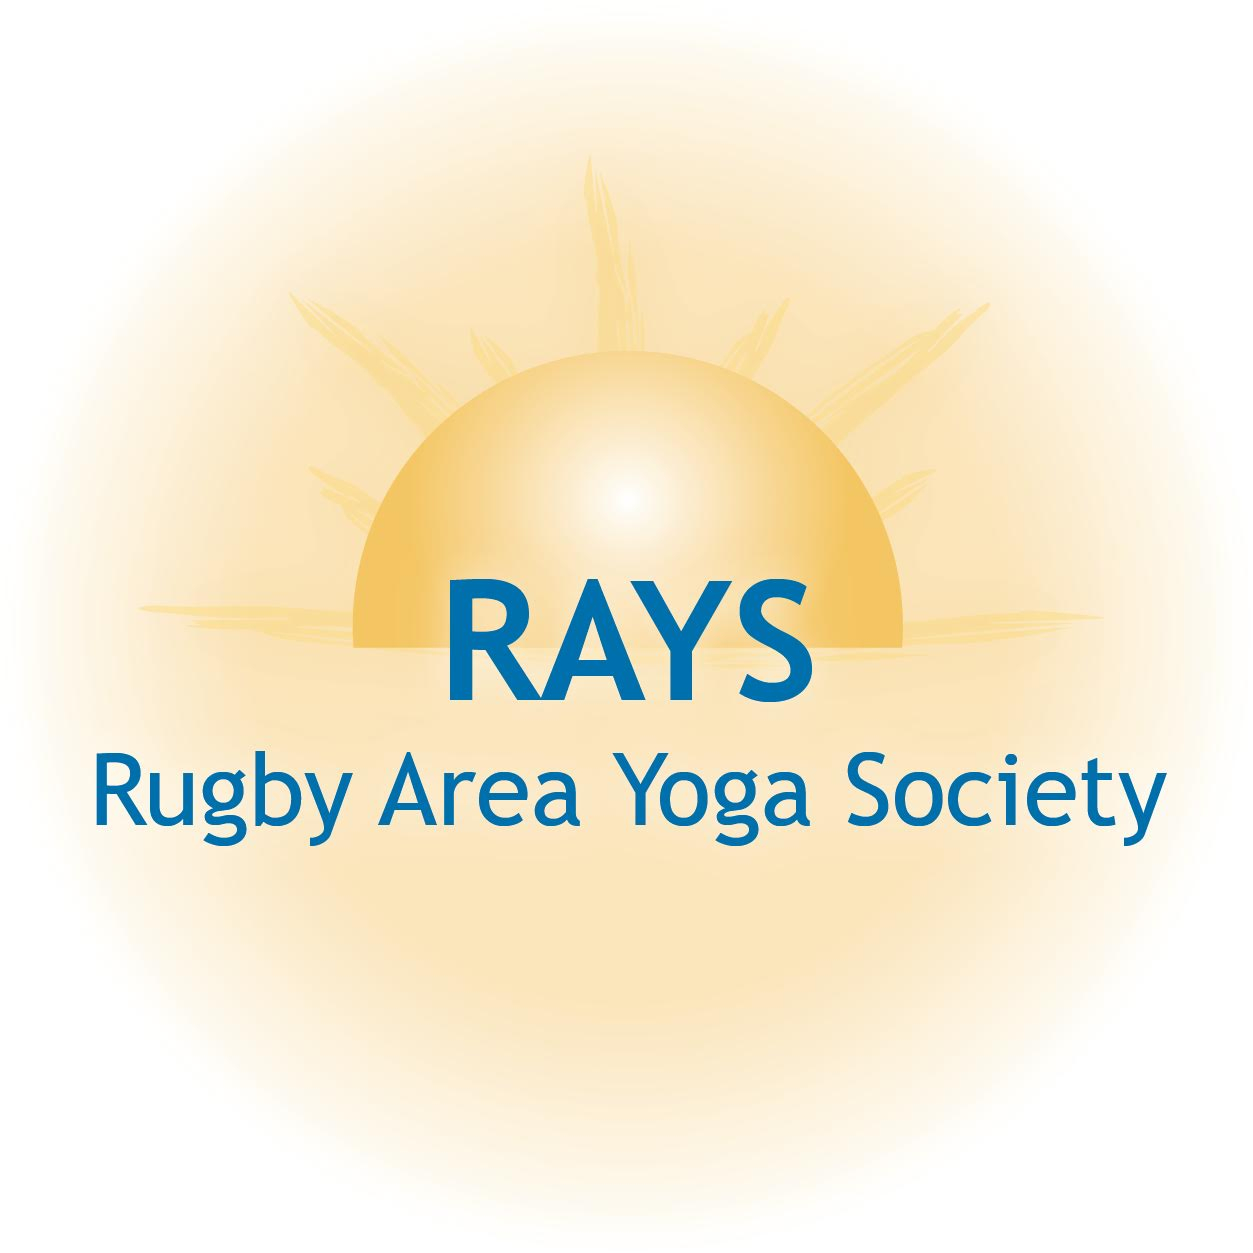 Rugby Area Yoga Society